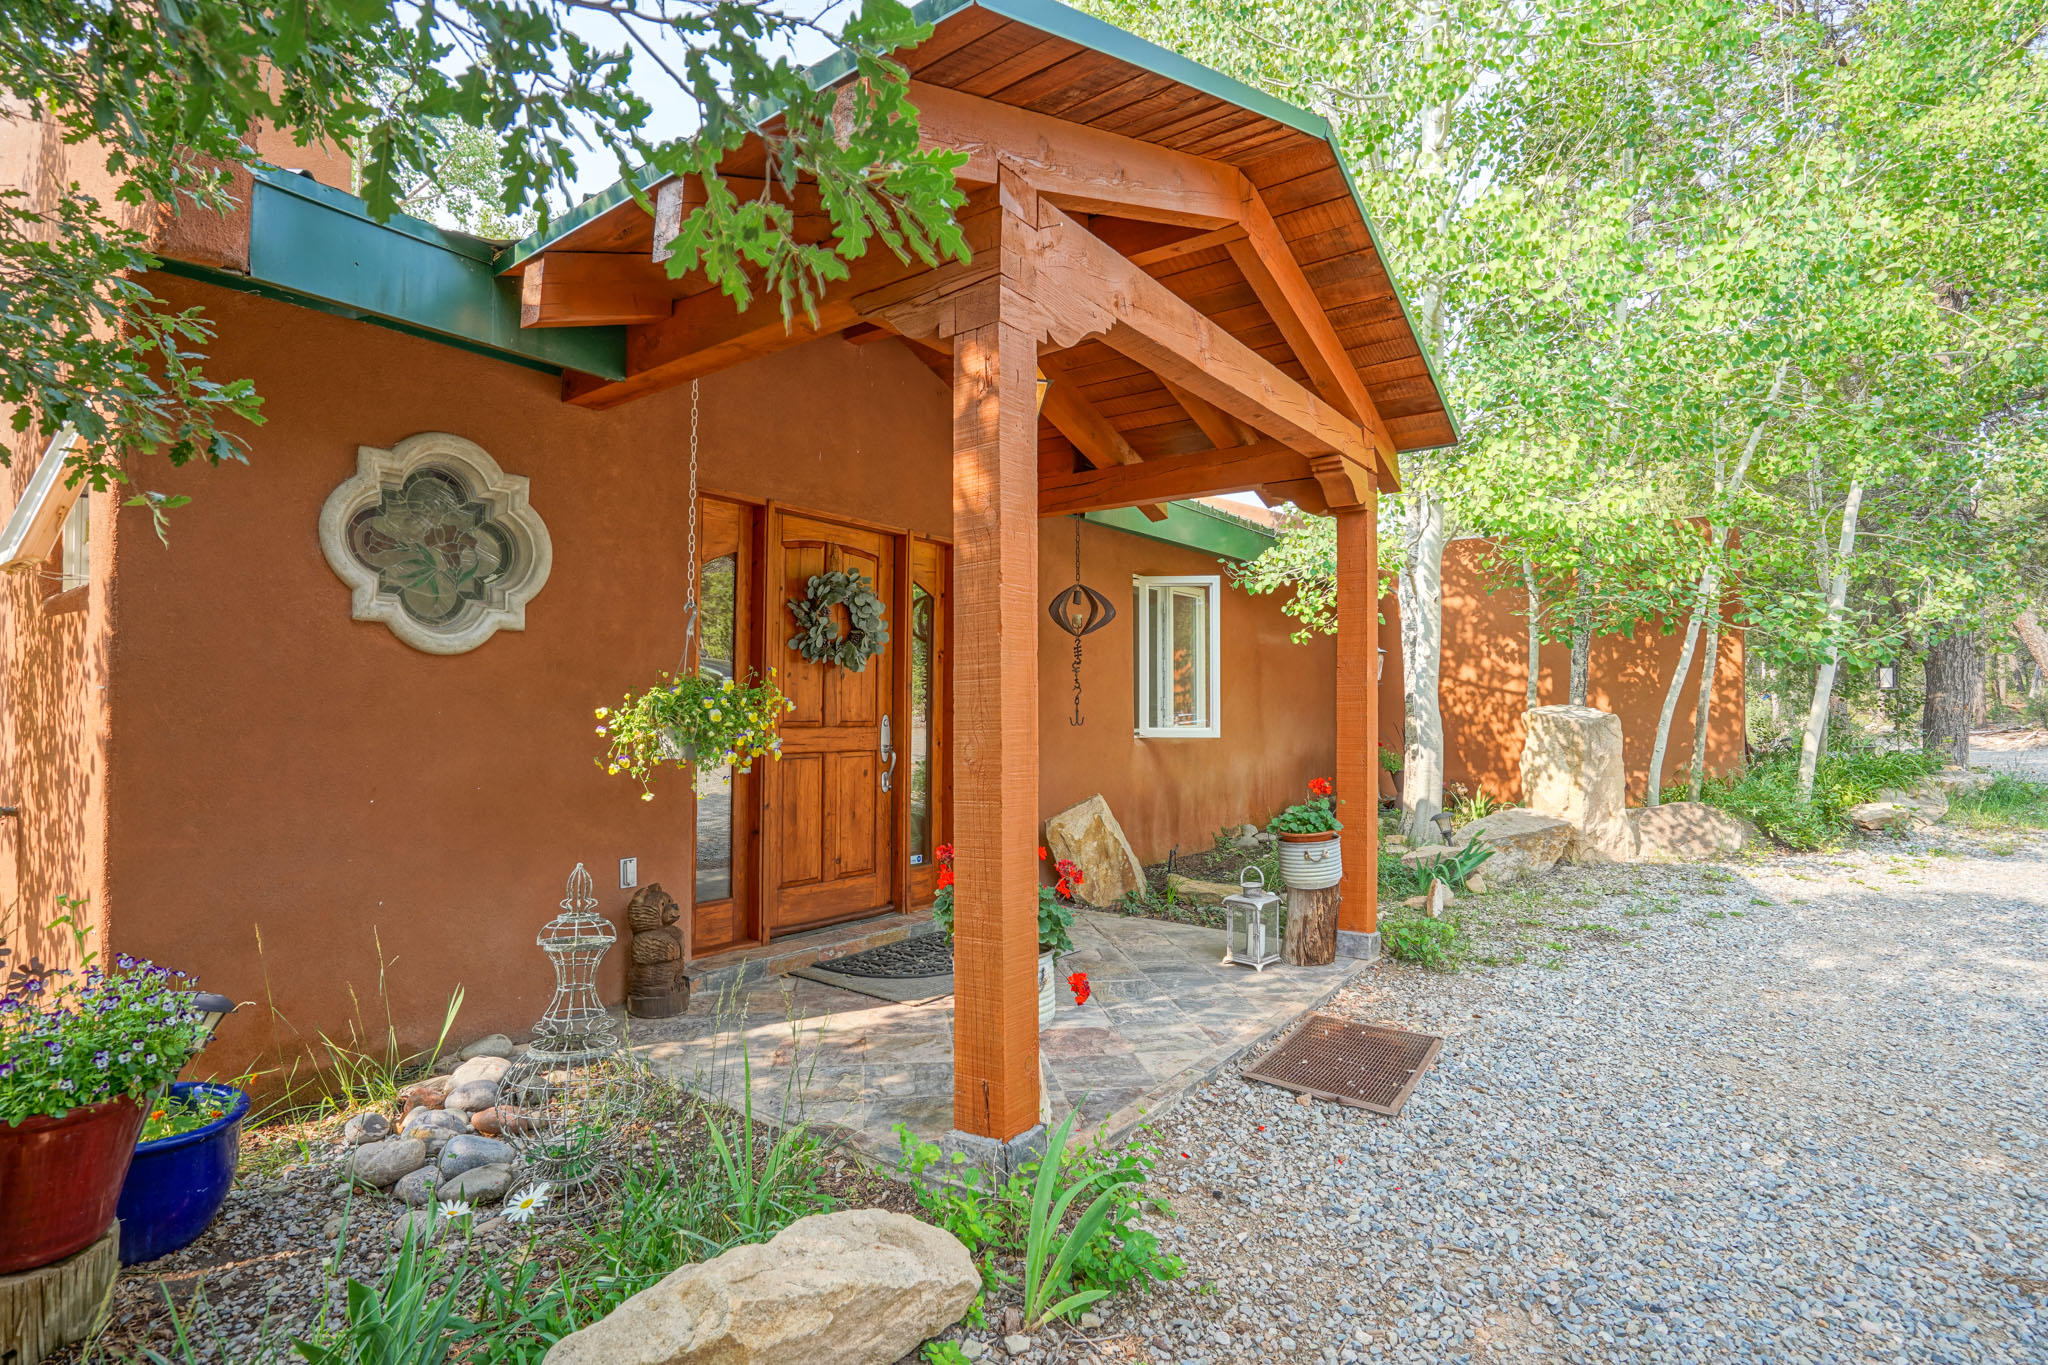 Tijeras' best kept secret! An exclusive 8 home community only 20 minutes from ABQ offers convenience and privacy. This property borders National Forest on 2 sides! This Architecturally-designed and Eco-Friendly home will captivate you the moment you walk through the door. The beautiful Vega ceilings and polished Saltillo tile give you the traditional New Mexico style you love, while the remodeled kitchen and smooth finished walls give you the modern look you need. Abundant amount of natural light. Passive solar, Low-E windows, and radiant heat keep utility costs low. Newer IB roof with transferable warranty! 220 outlet in garage. Gated entry for additional privacy. The VIEWS are breathtaking in all seasons. The engineered septic ''Wet Lands'' brings in wildlife all year. Horses permitted!